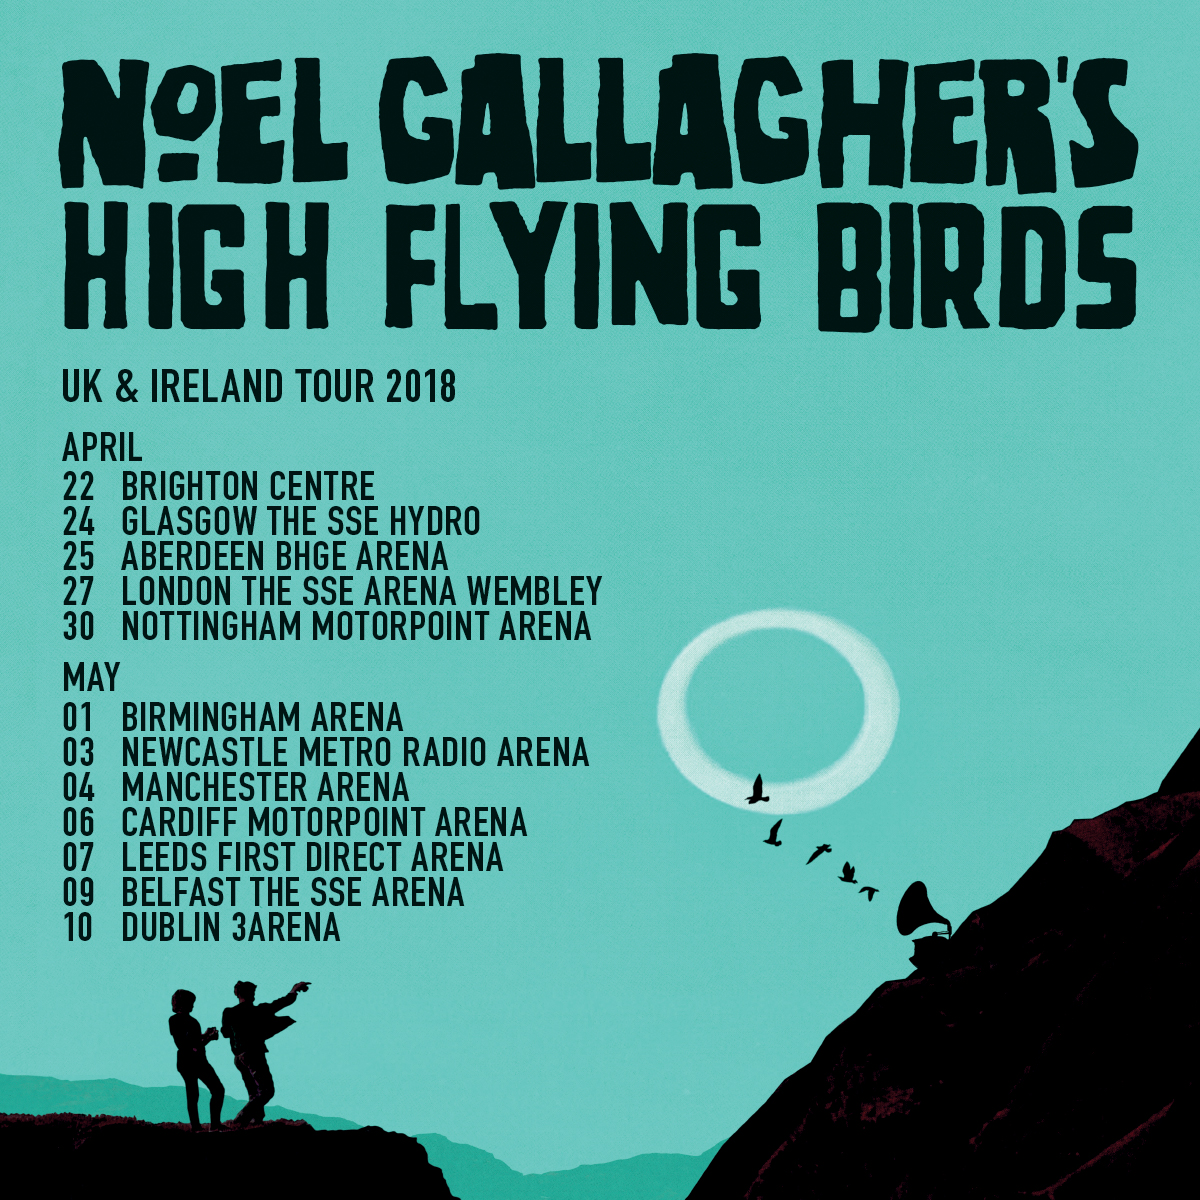 noel gallagher 2018 tour dates Music: Noel Gallagher's High Flying Birds Announce Date At  noel gallagher 2018 tour dates